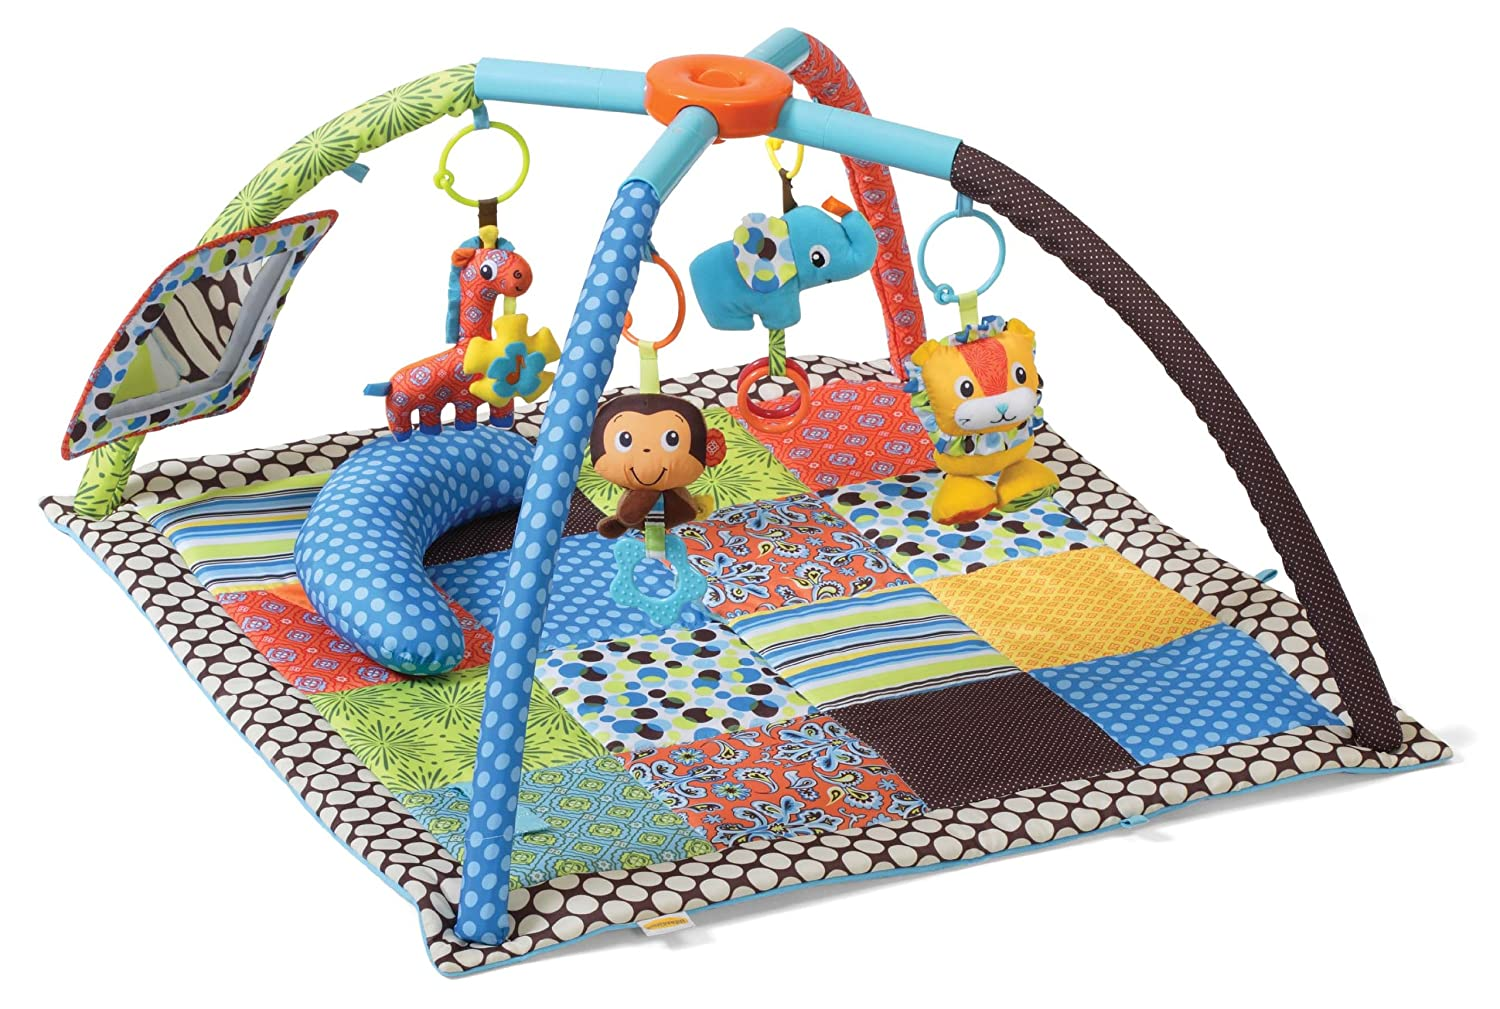 amazoncom  infantino twist and fold activity gym vintage boy  - amazoncom  infantino twist and fold activity gym vintage boy  earlydevelopment playmats  baby